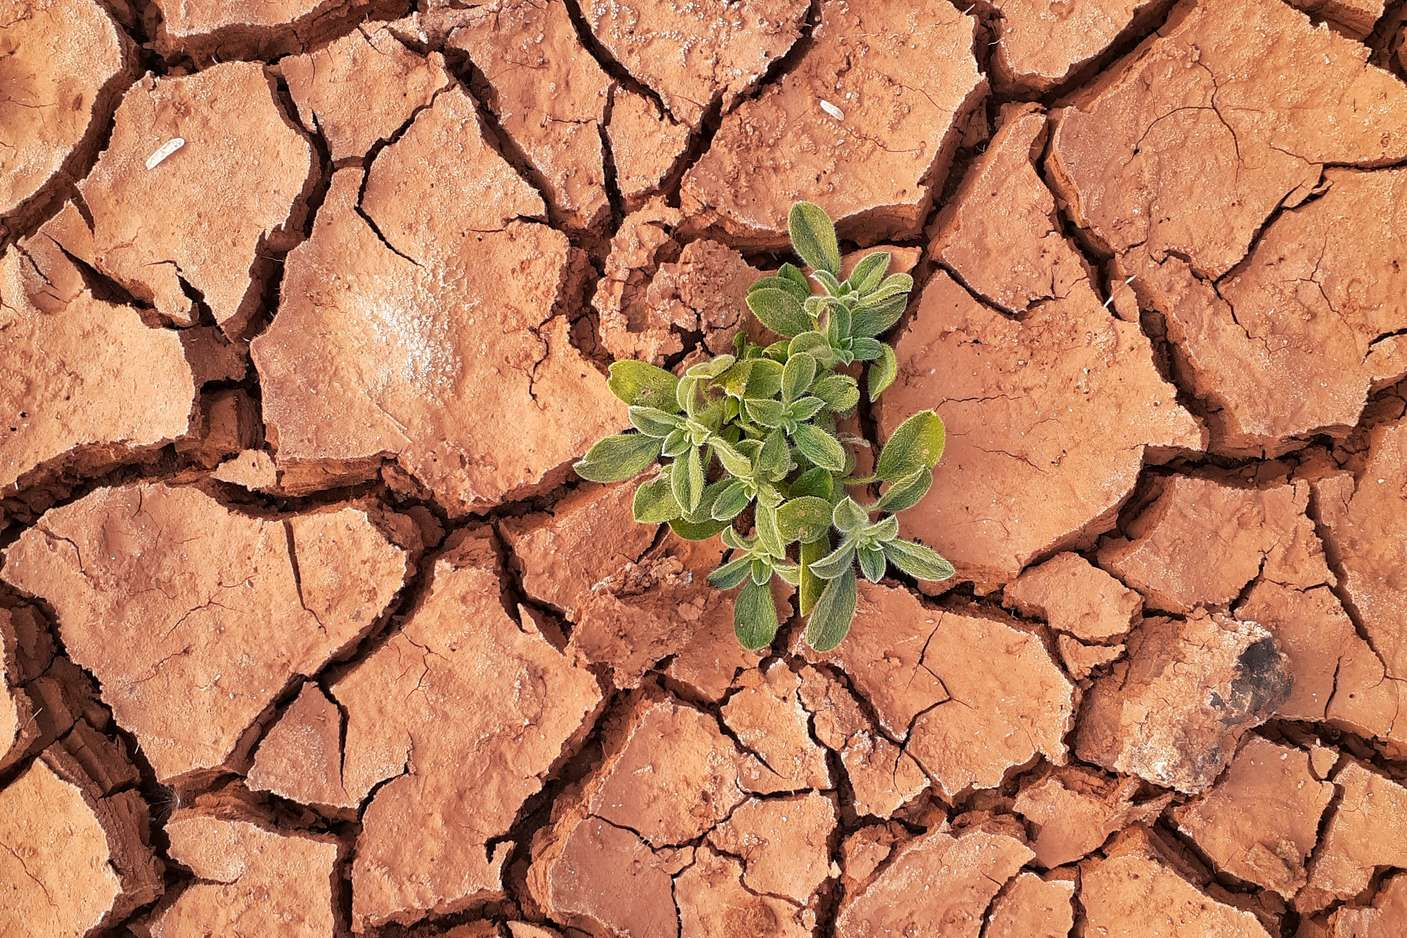 Droughts and the Post-2015 Agenda